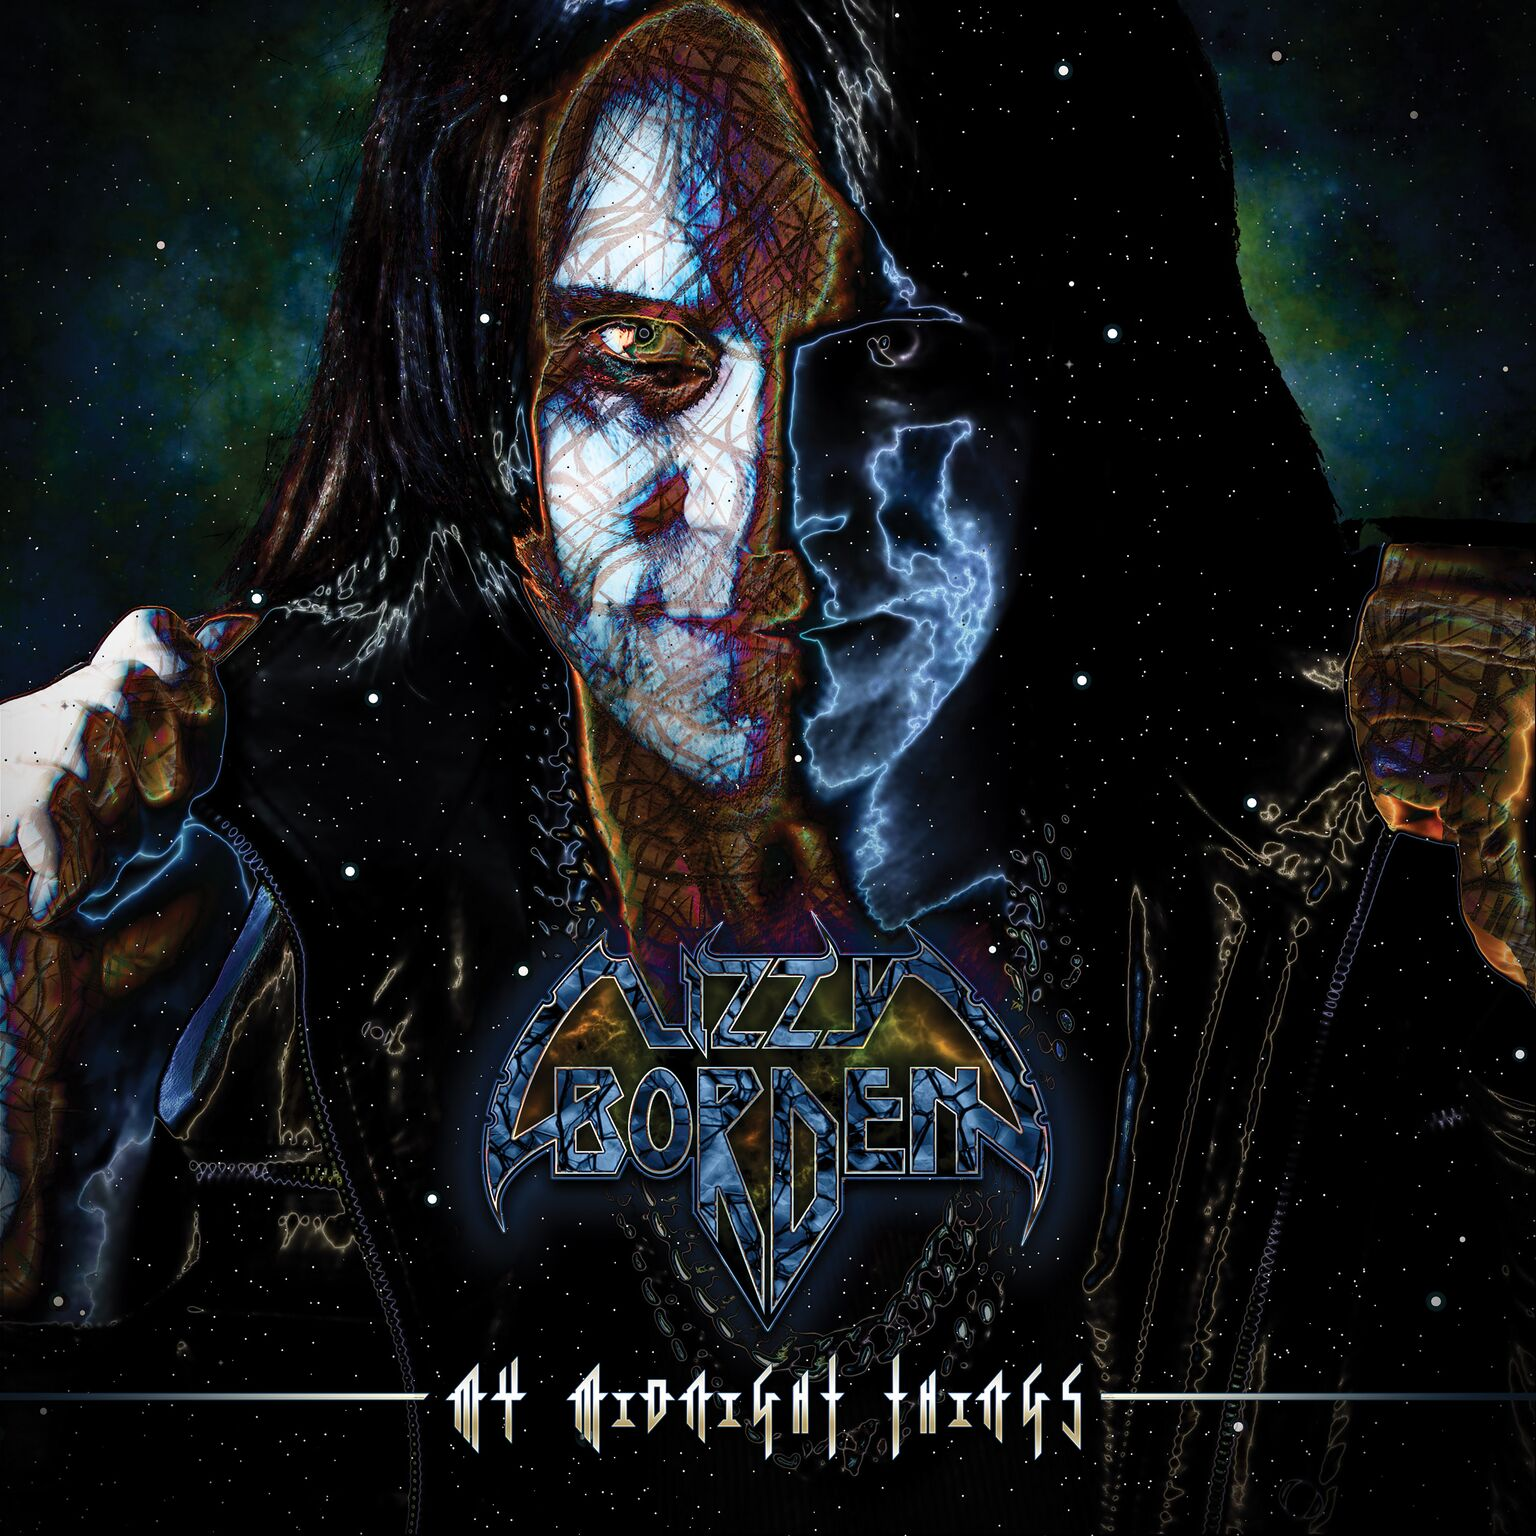 Lizzy Borden returns with his first album in 11 years, 'My Midnight Things'